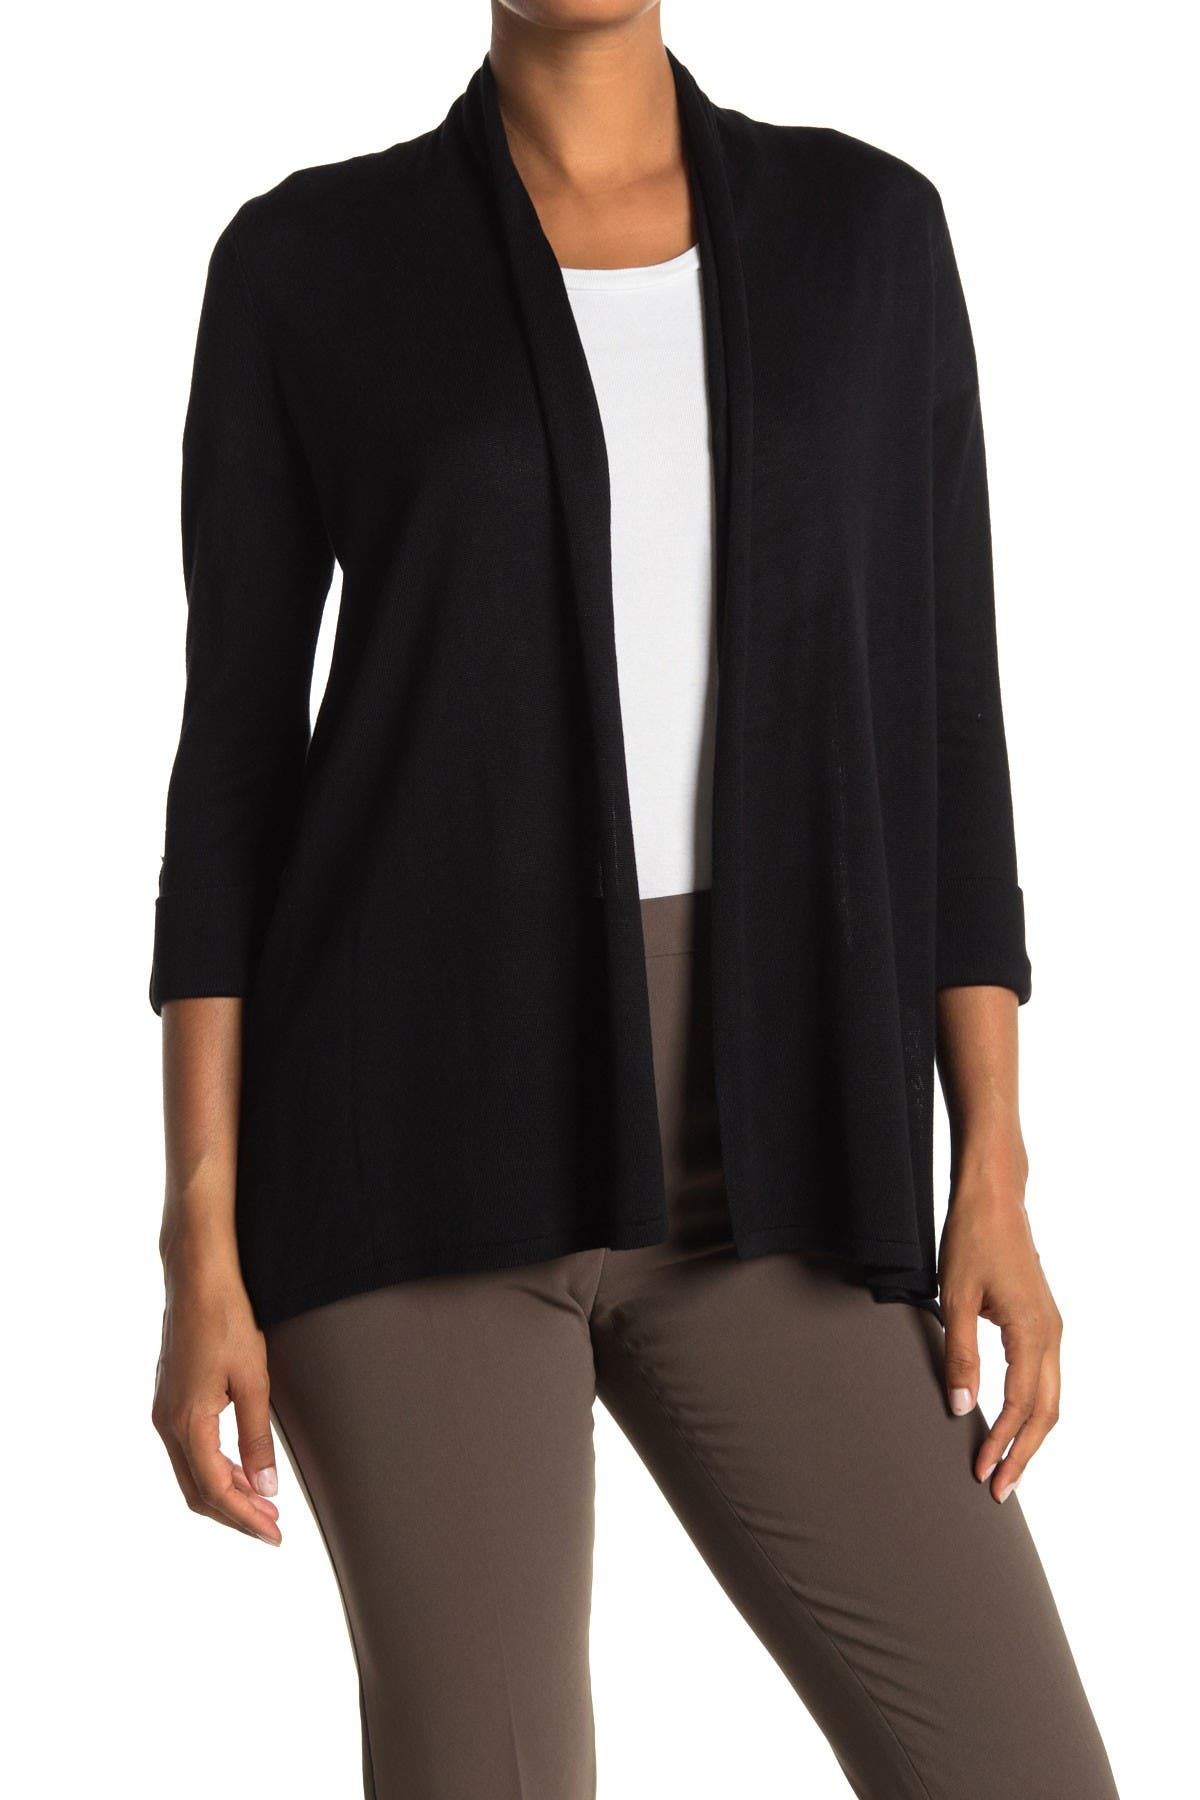 Image of M Magaschoni 3/4 Length Sleeve Cardigan Sweater